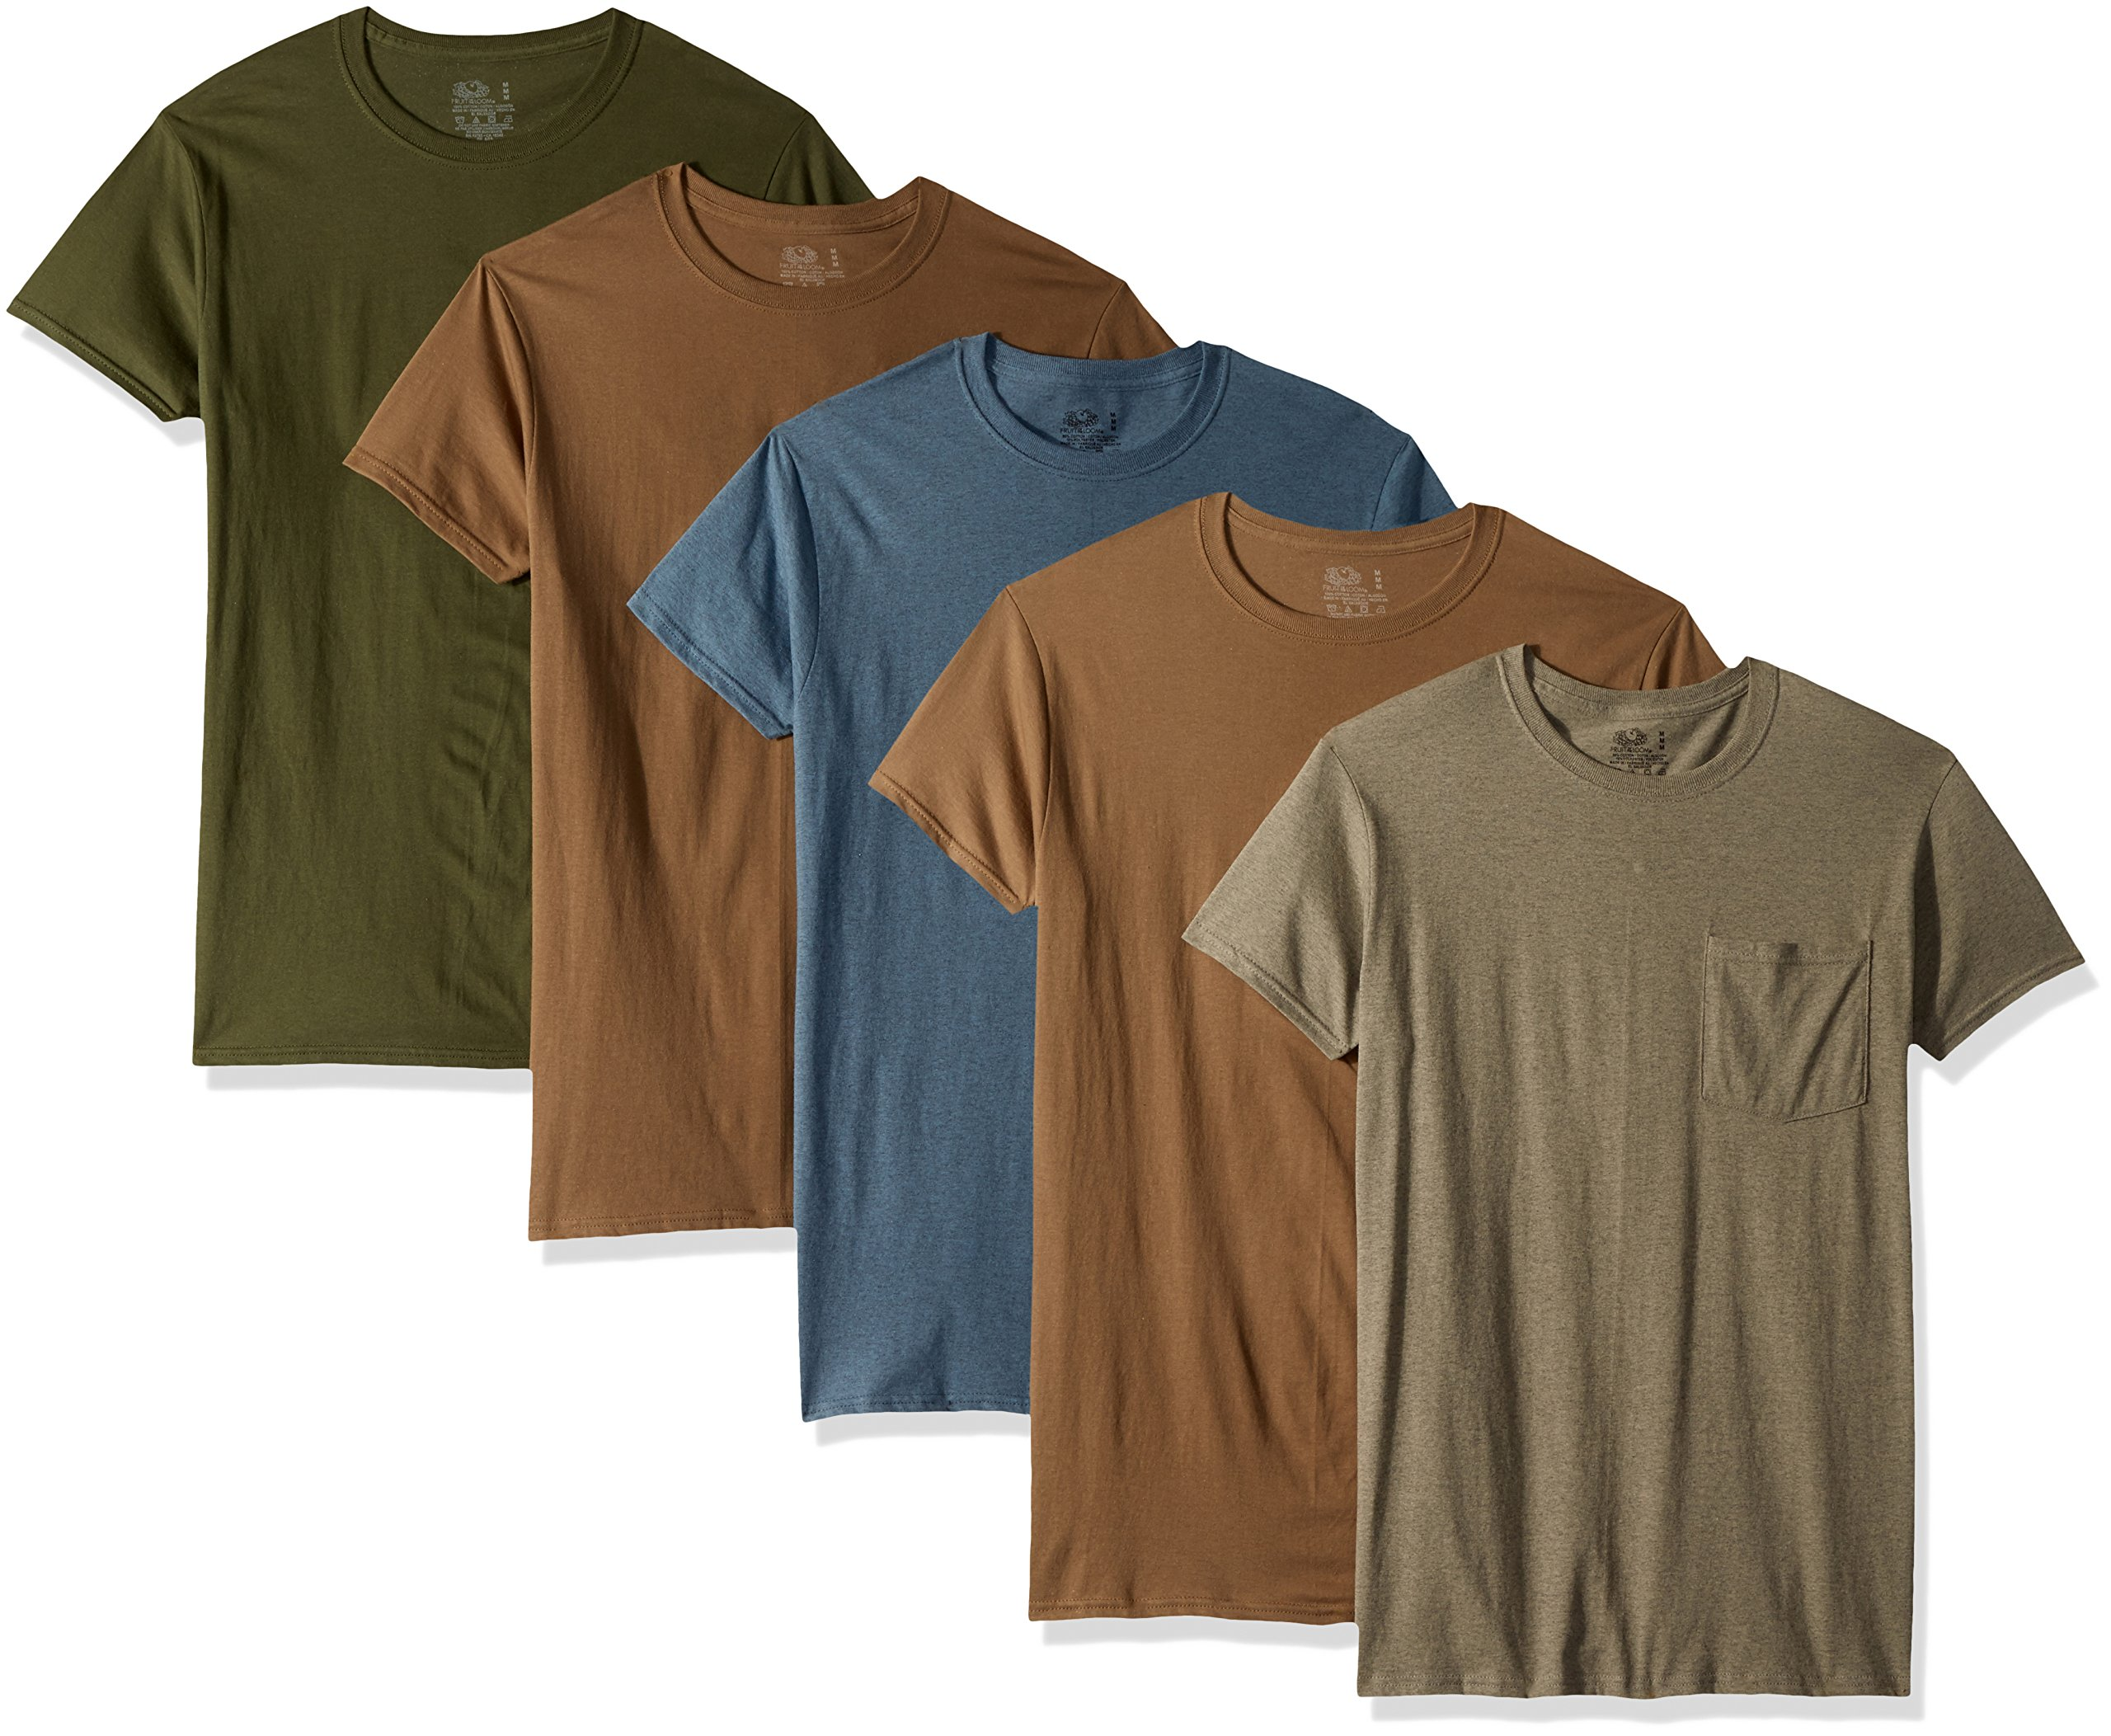 Fruit of the Loom Men's 5-Pack Assorted Pocket T-Shirt, Assorted Earth Tones (5 Pack), X-Large